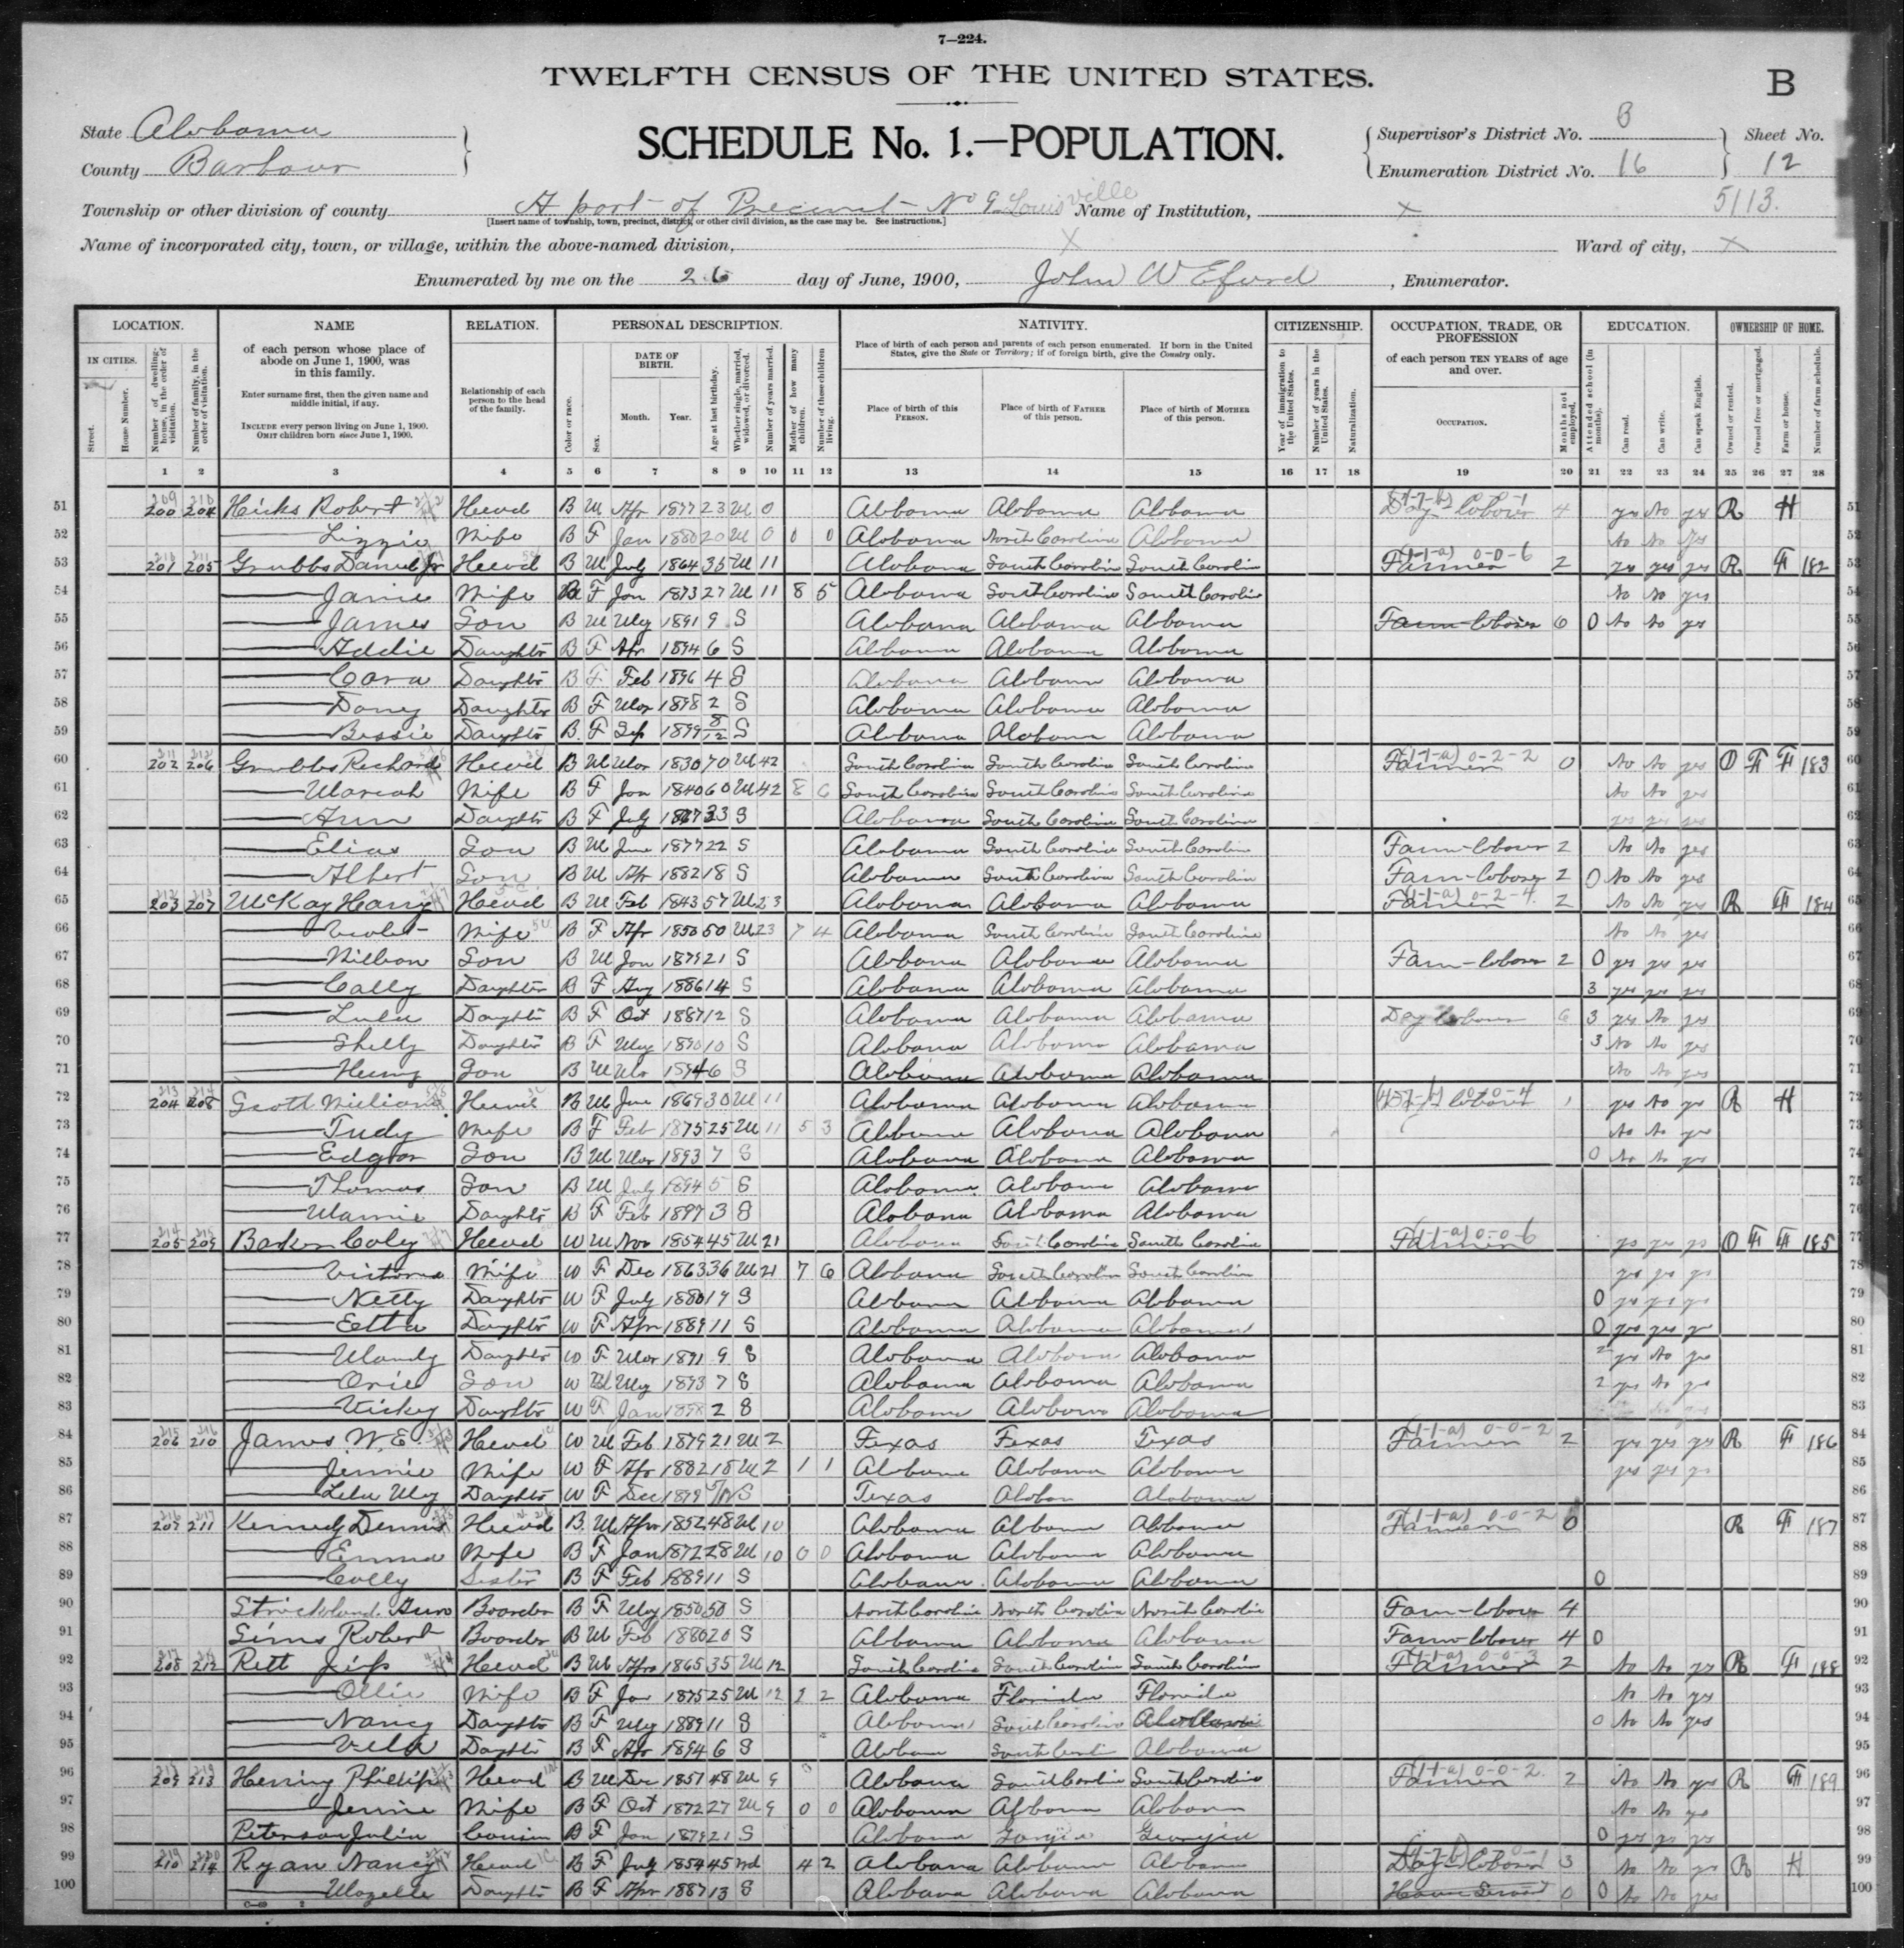 Alabama: BARBOUR County, Enumeration District 16, Sheet No. 12B